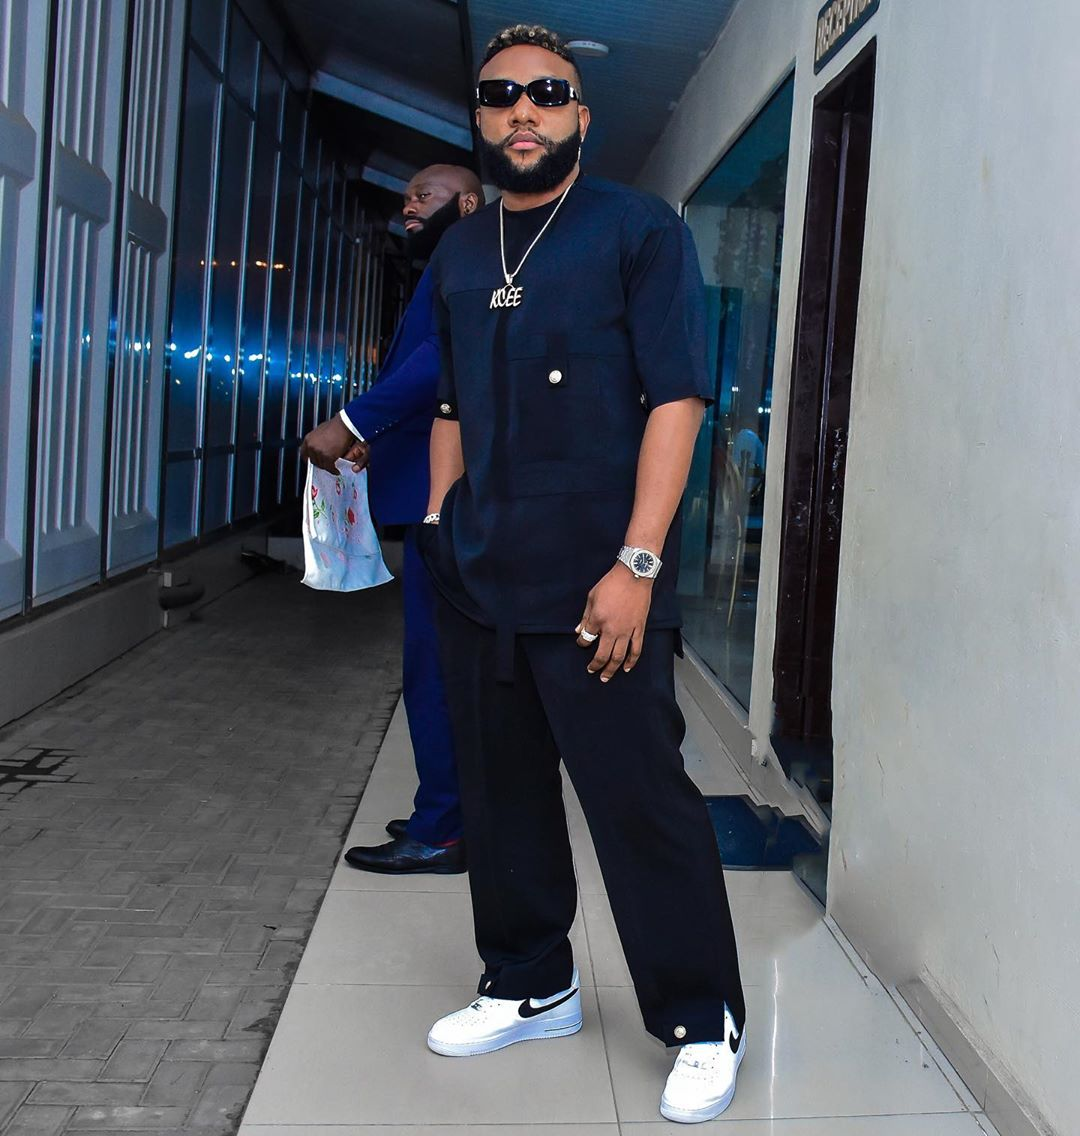 africa-male-celebrities-style-social-distancing-style-pandemic-style-rave